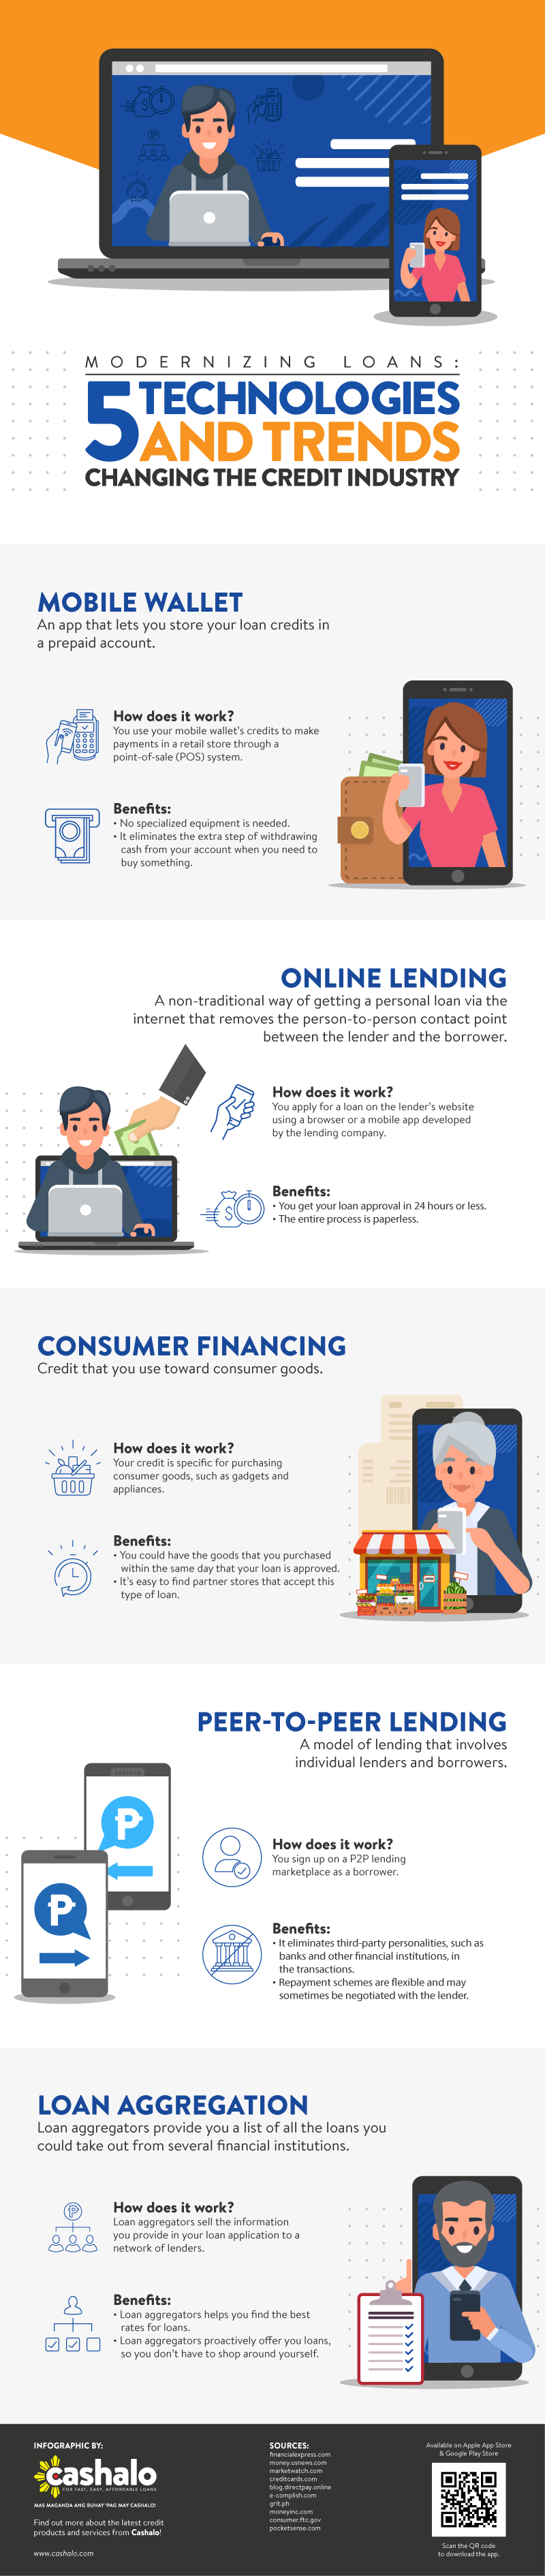 5 Technologies And Trends Changing The Credit Industry Infographic Technology Technology Trends